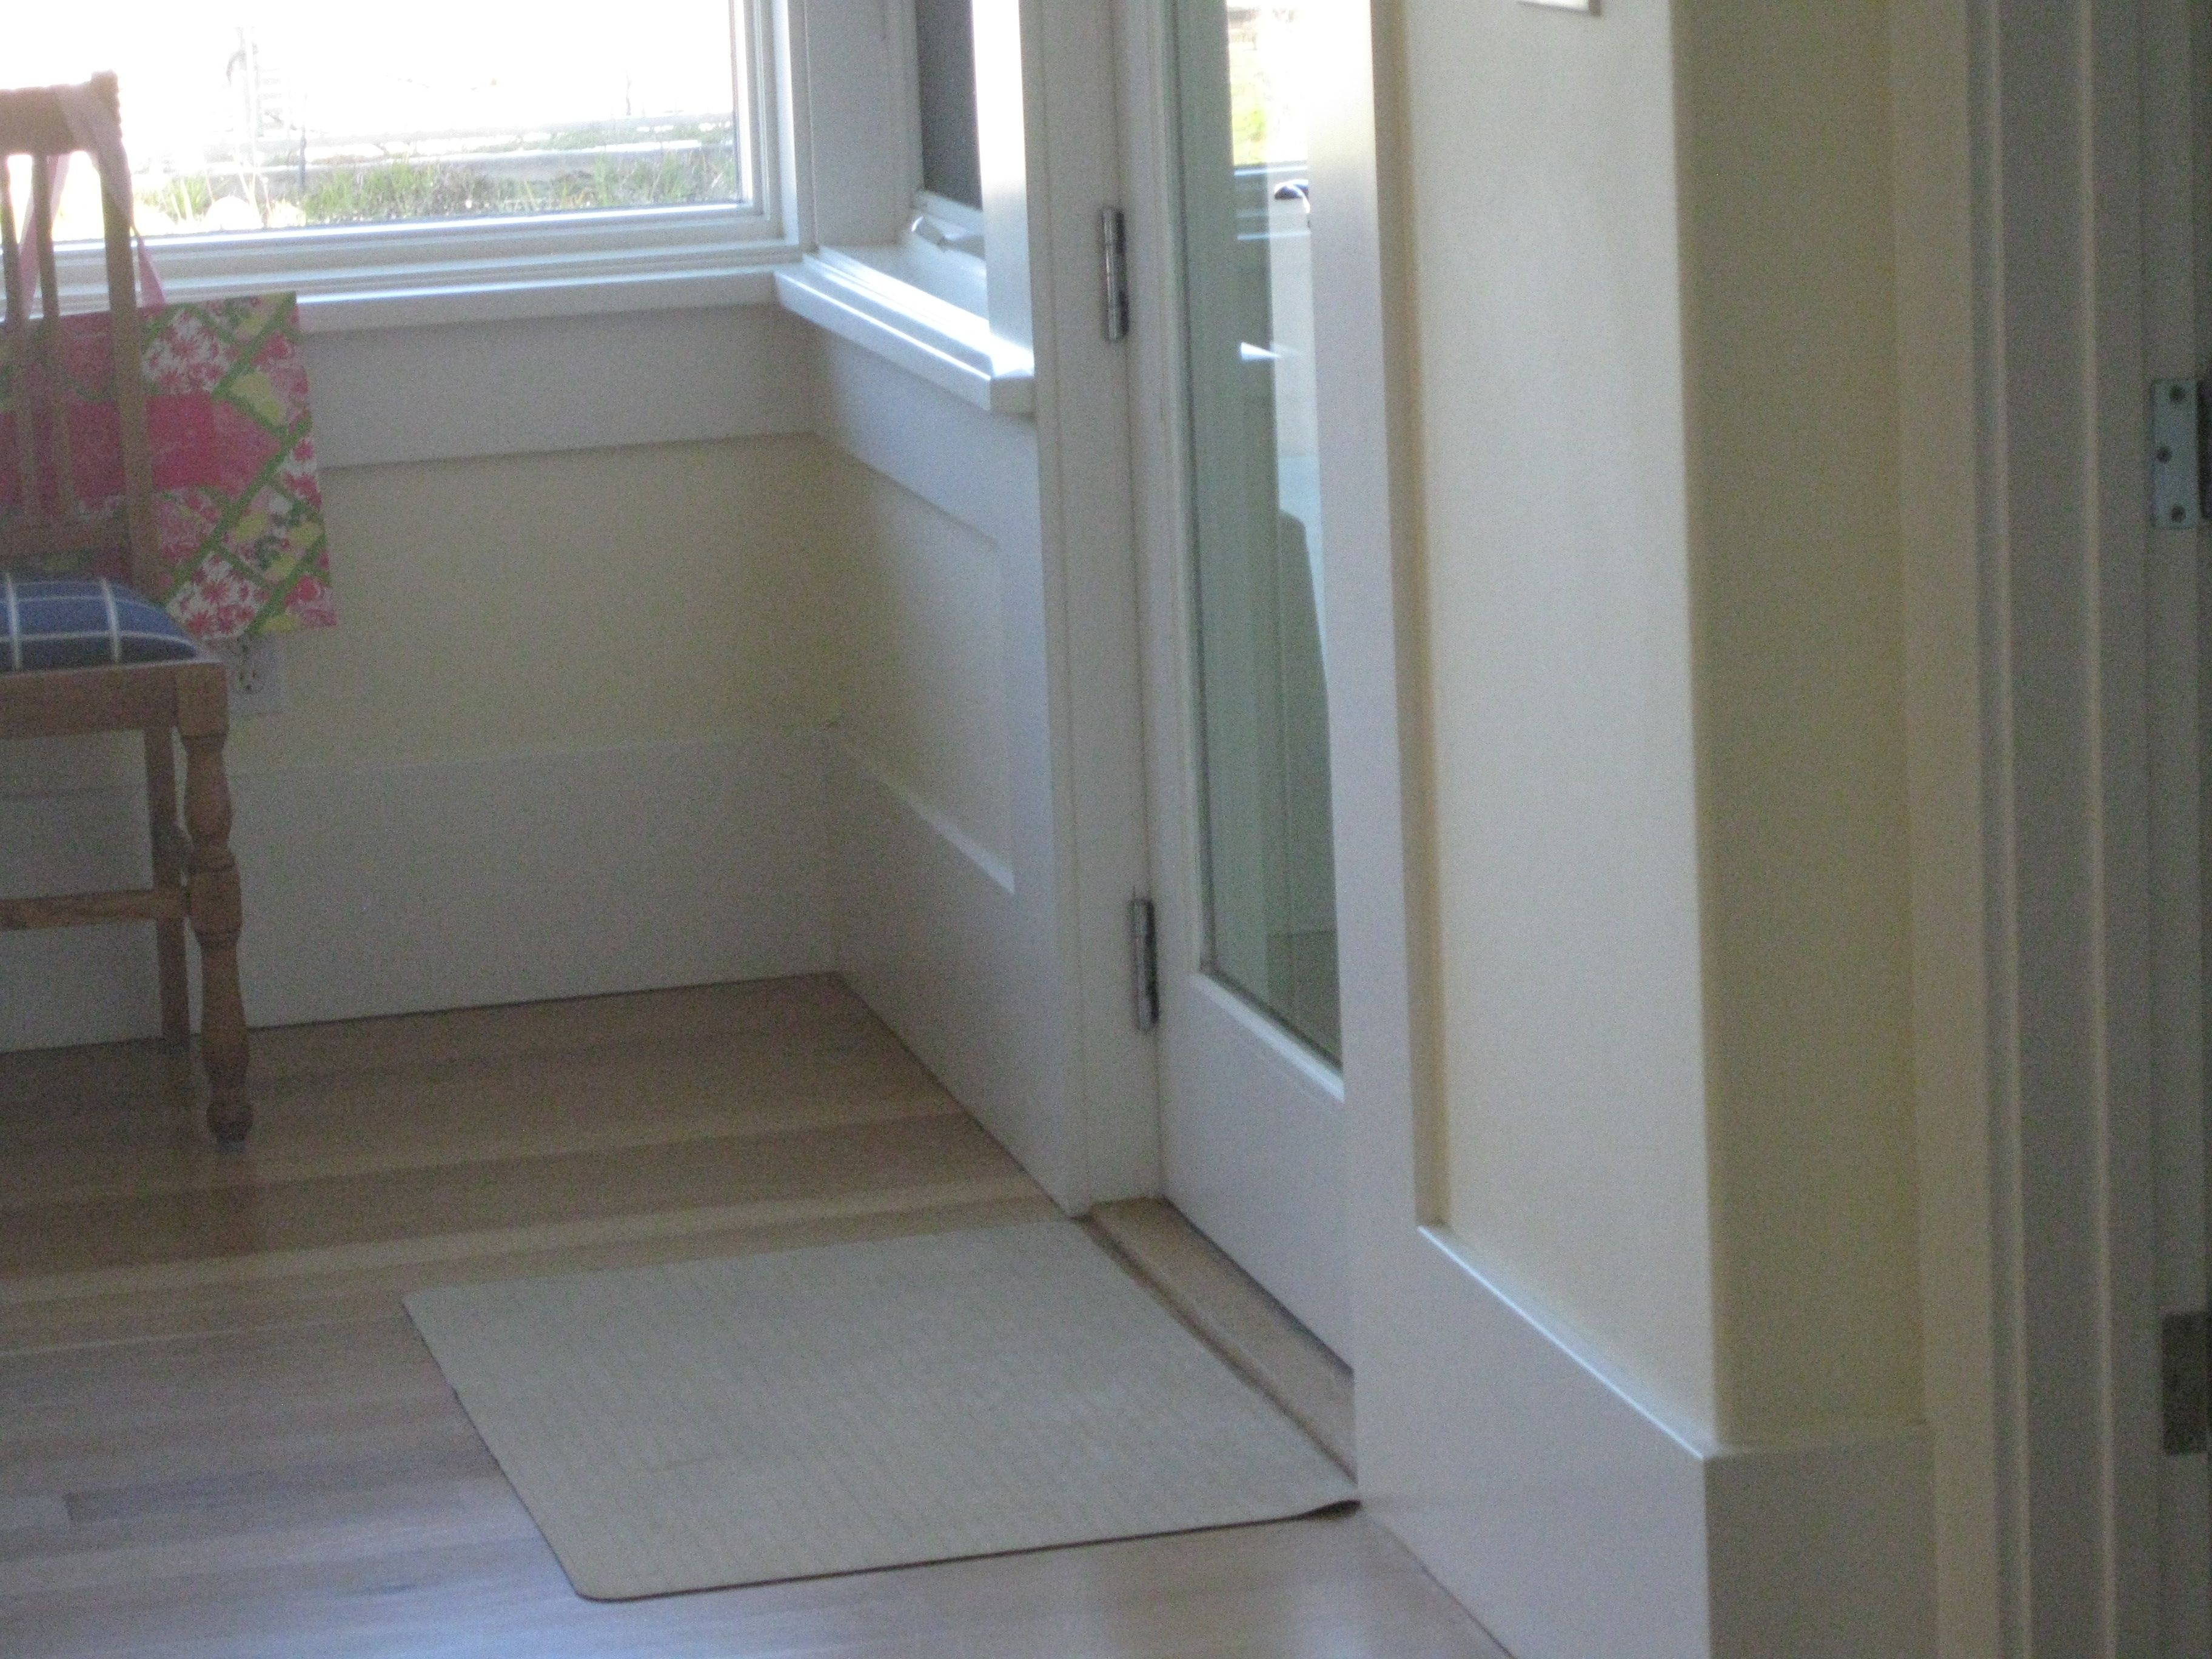 Squared Finish In White Skirting Boards For The Home